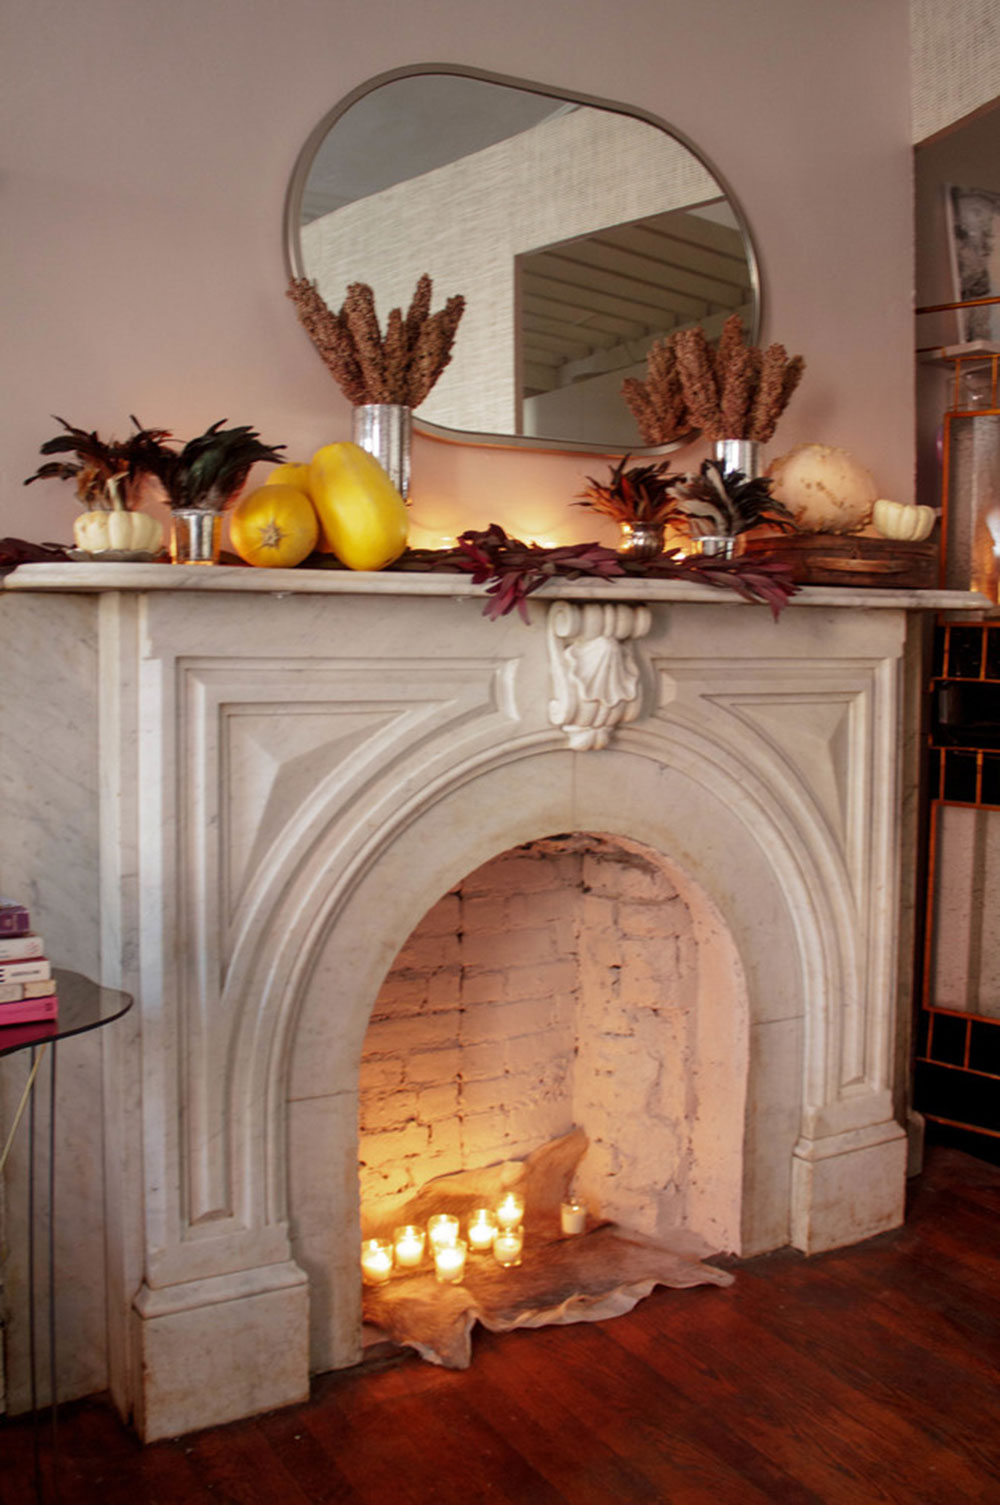 A-Brooklyn-Coat-Celebrates-Harvest-for-Thanksgiving-by-Sarah-Seung-McFarland How to Decorate a Fireplace Cladding (Neat Decoration Ideas)